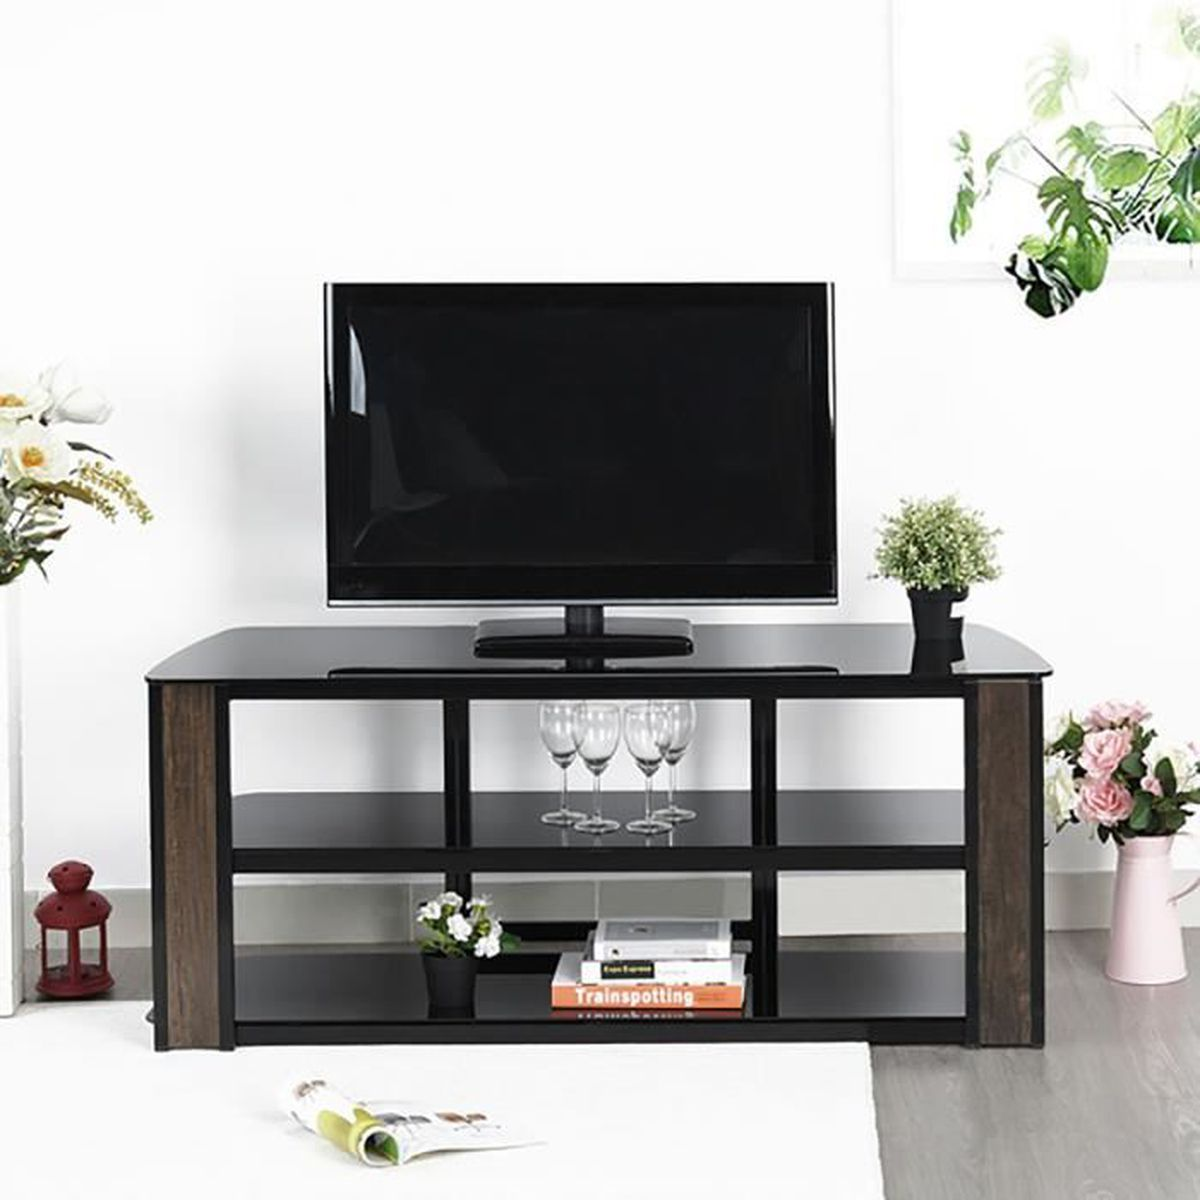 meuble tv metal et verre achat vente meuble tv metal. Black Bedroom Furniture Sets. Home Design Ideas